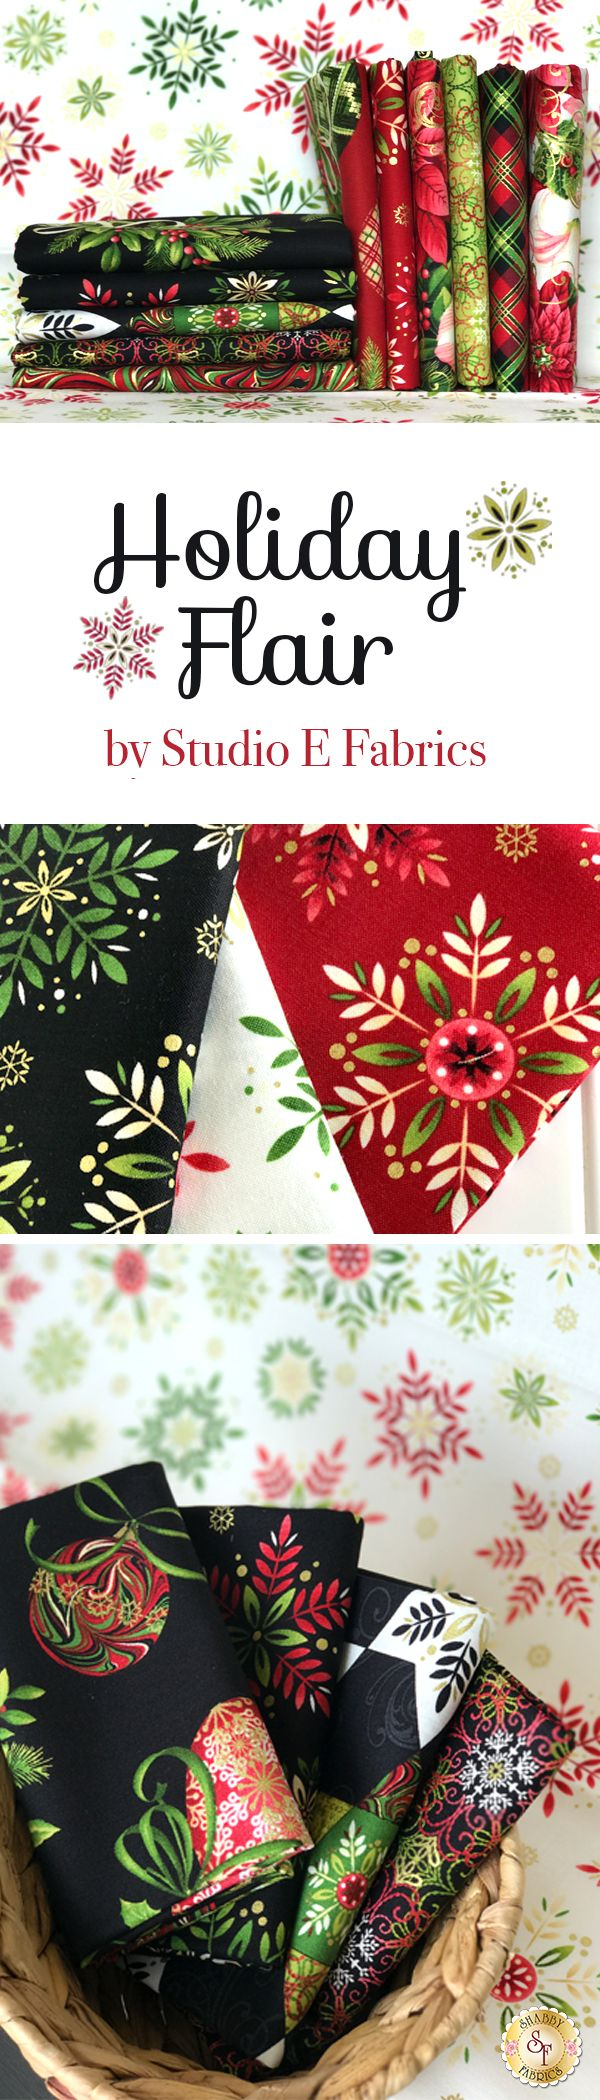 Holiday Flair by Art Loft for Studio E is a Christmas themed fabric collection featuring metallic accents available at Shabby Fabrics!